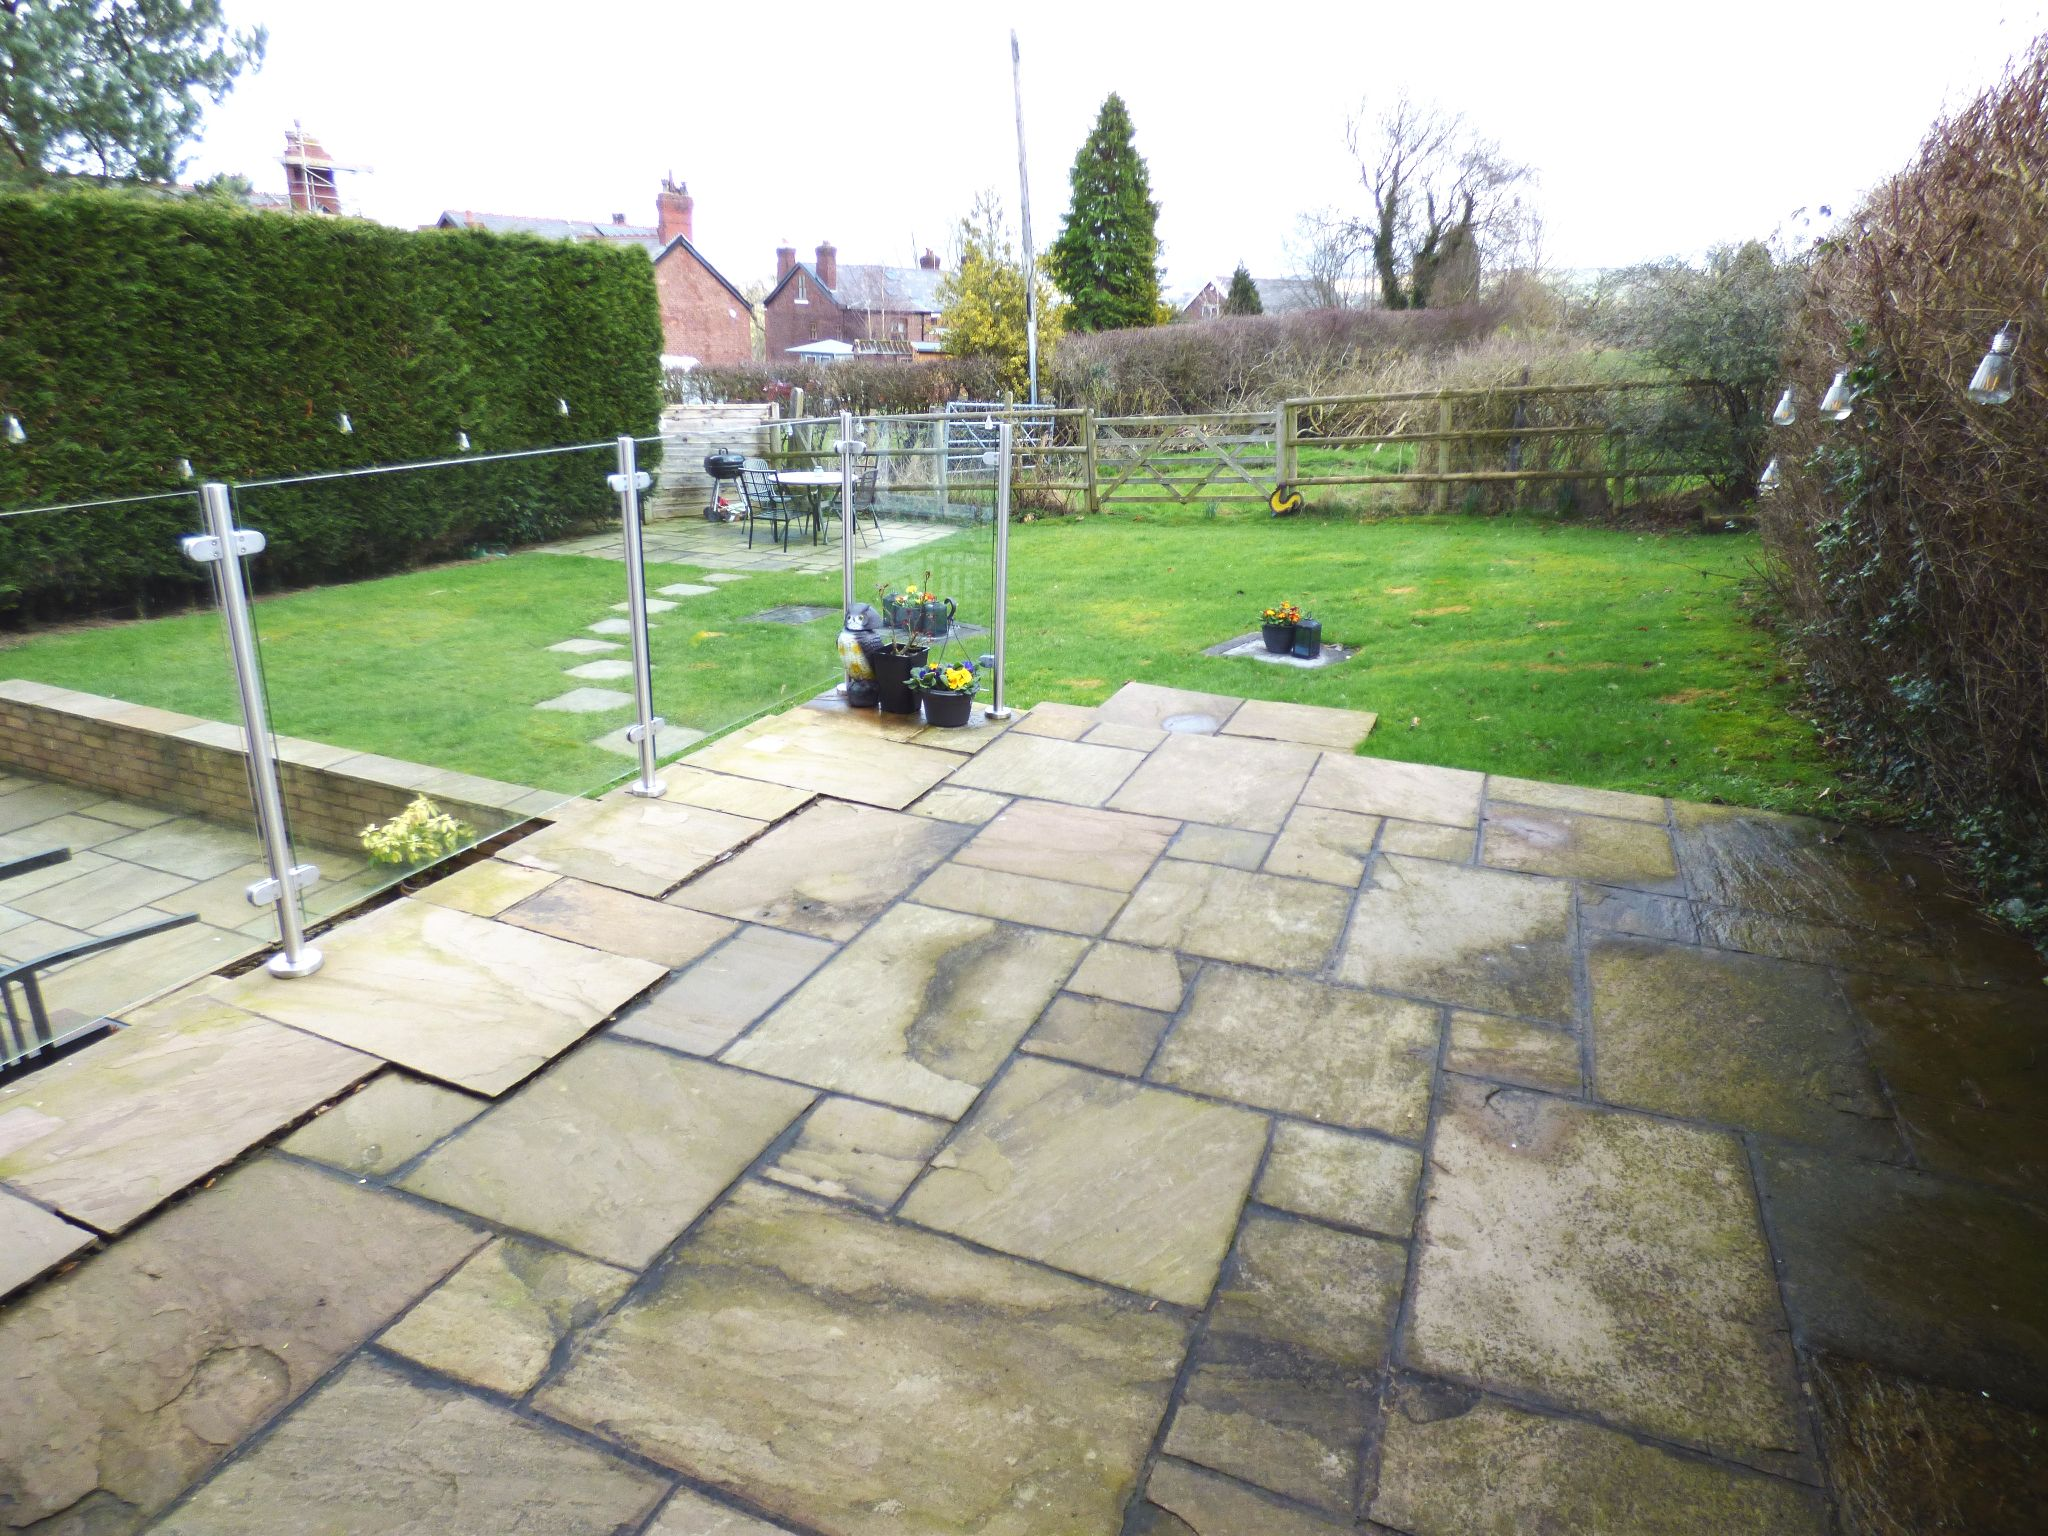 5 Bedroom Detached House For Sale - Patio Area